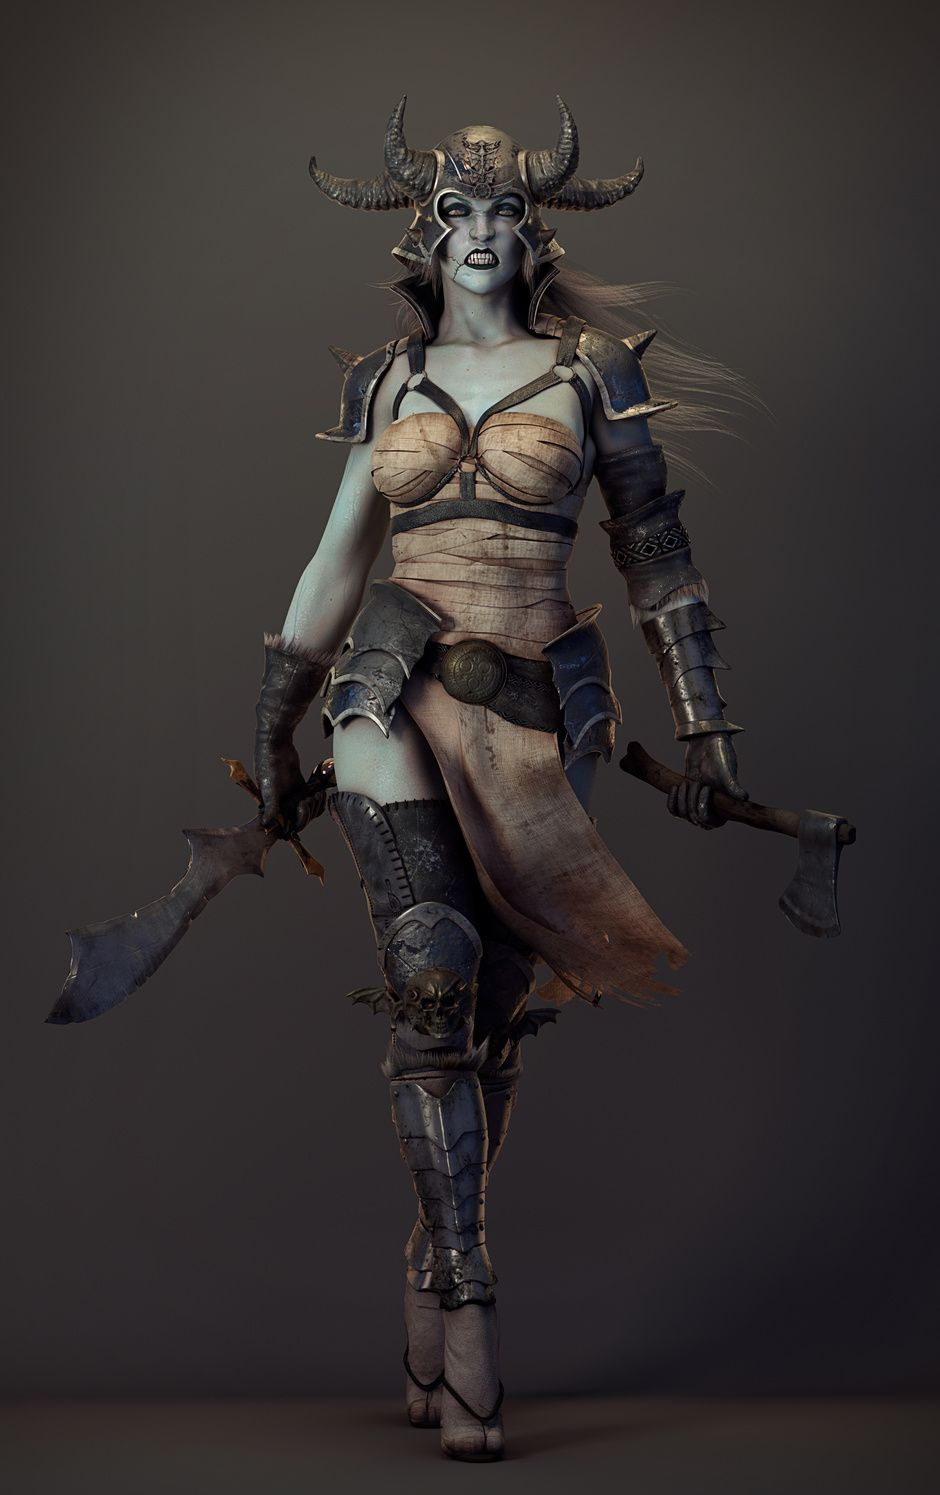 Cmivfx Zbrush Character Concept Design : Demonic warrior by omar aweidah fantasy d cgsociety